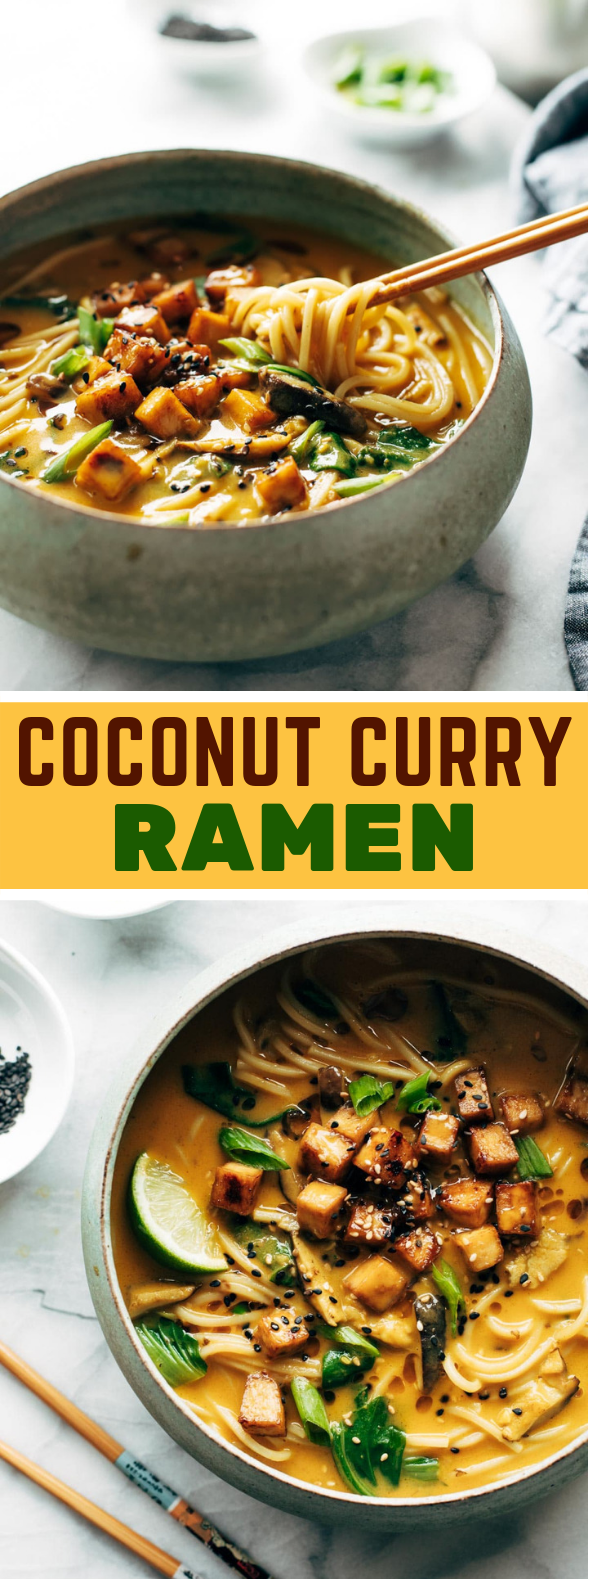 Coconut Curry Ramen #vegetarian #veggies